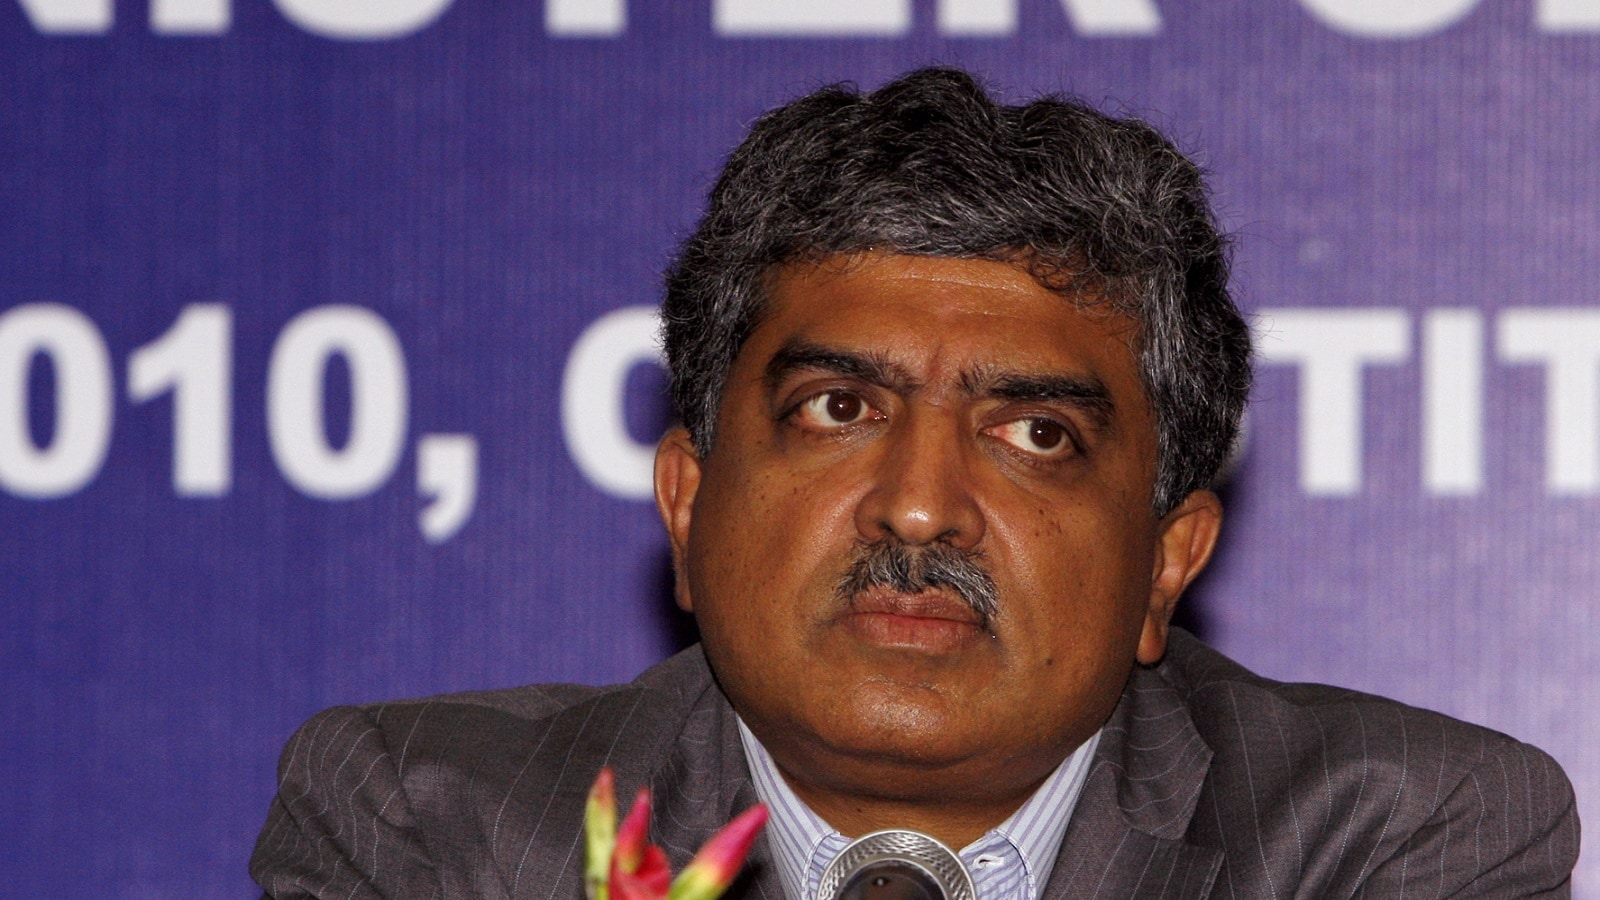 3:  Entrepreneur Nandan Nilekani comes third with over 25 lakh Twitter followers. (Photo by Sipra Das/India Today Group/Getty Images)